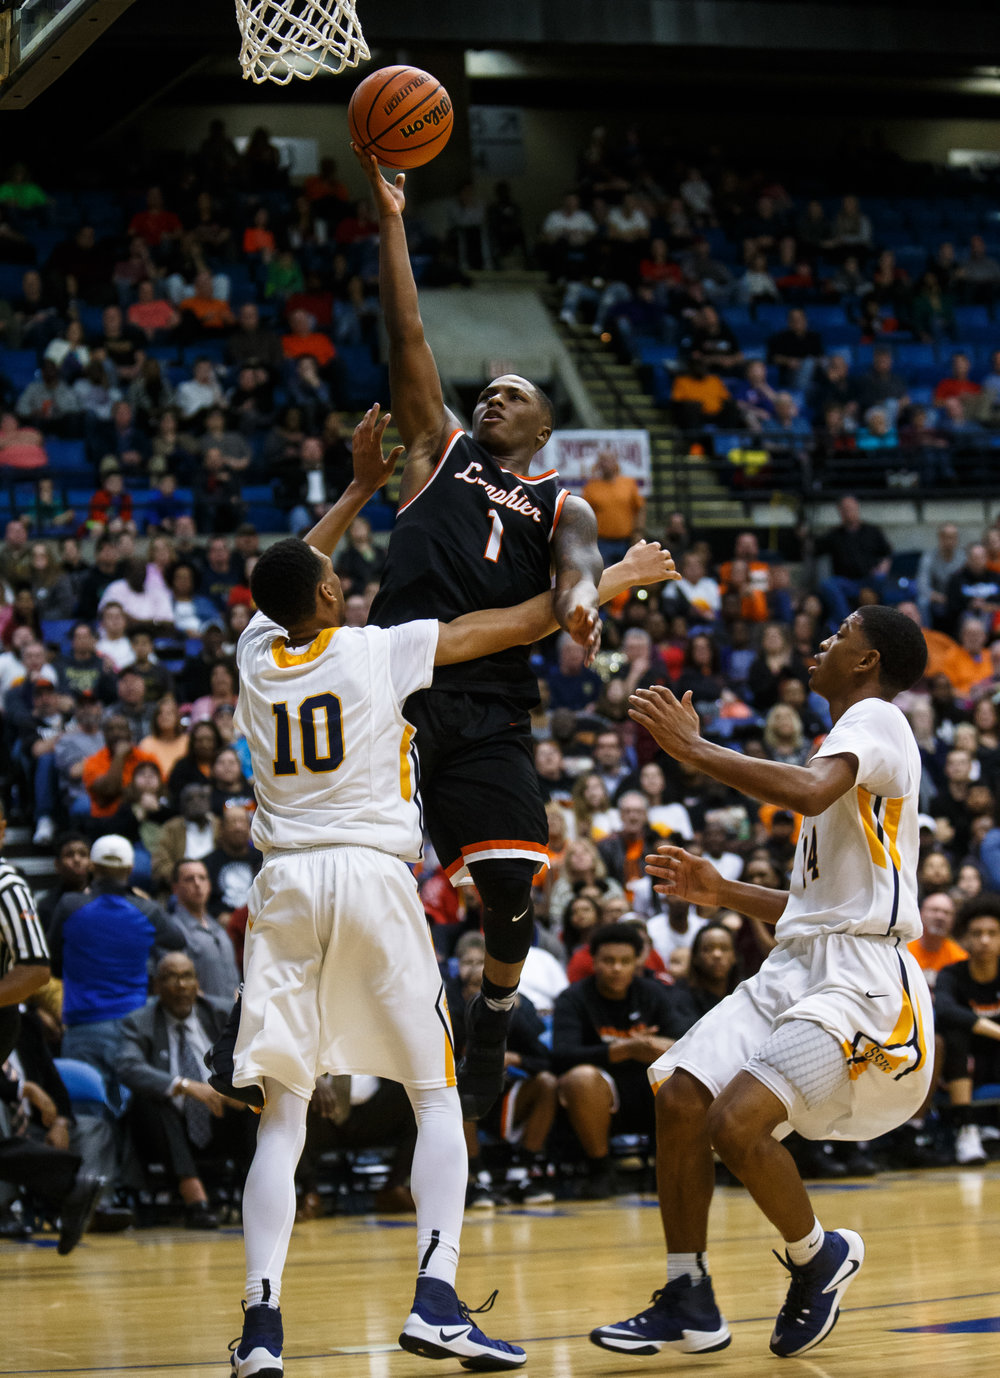 Lanphier's Yaakema Rose (1) with the lay-up over Southeast's Isaiah Walton (10) in the fourth quarter of the championship game of the Boys City Basketball Tournament at the Prairie Capital Convention Center, Saturday, Jan. 21, 2017, in Springfield, Ill. Justin L. Fowler/The State Journal-Register